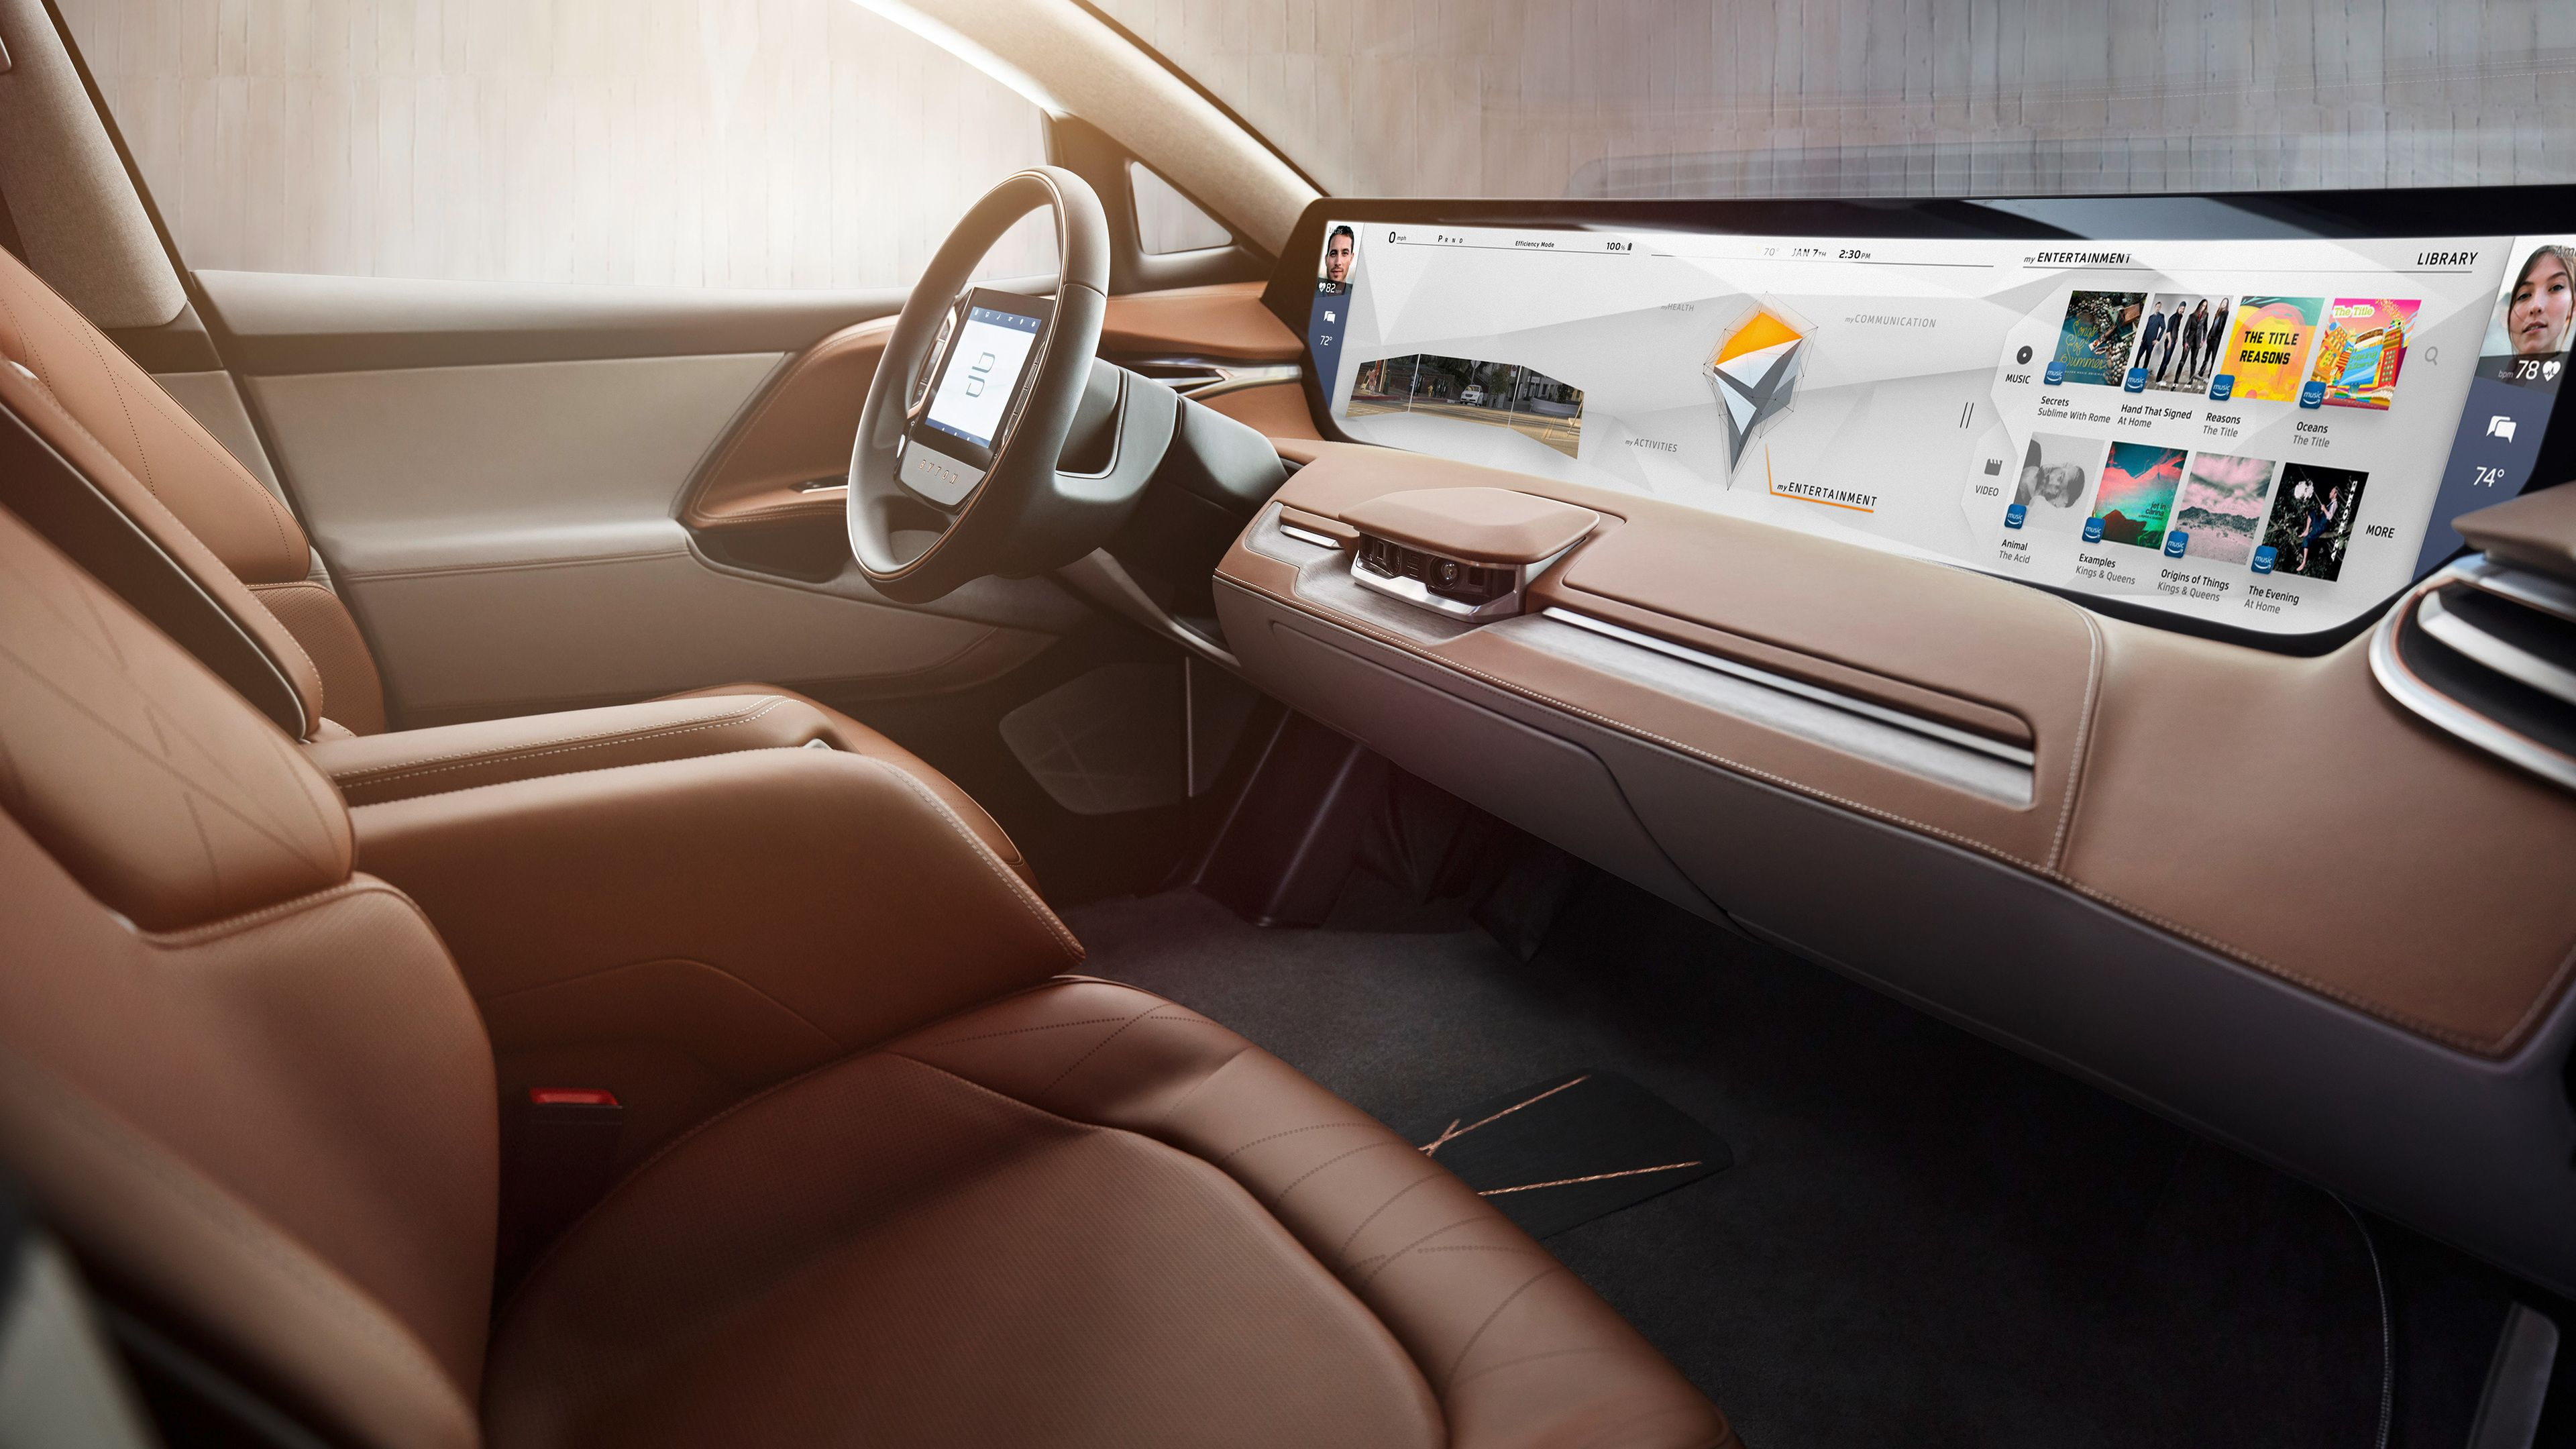 Byton Electric Car Interior Hd Wallpapers Electric Cars Wallpapers Cars Wallpapers Byton Wallpapers 4k Wal Car Experience Concept Cars Electric Car Concept